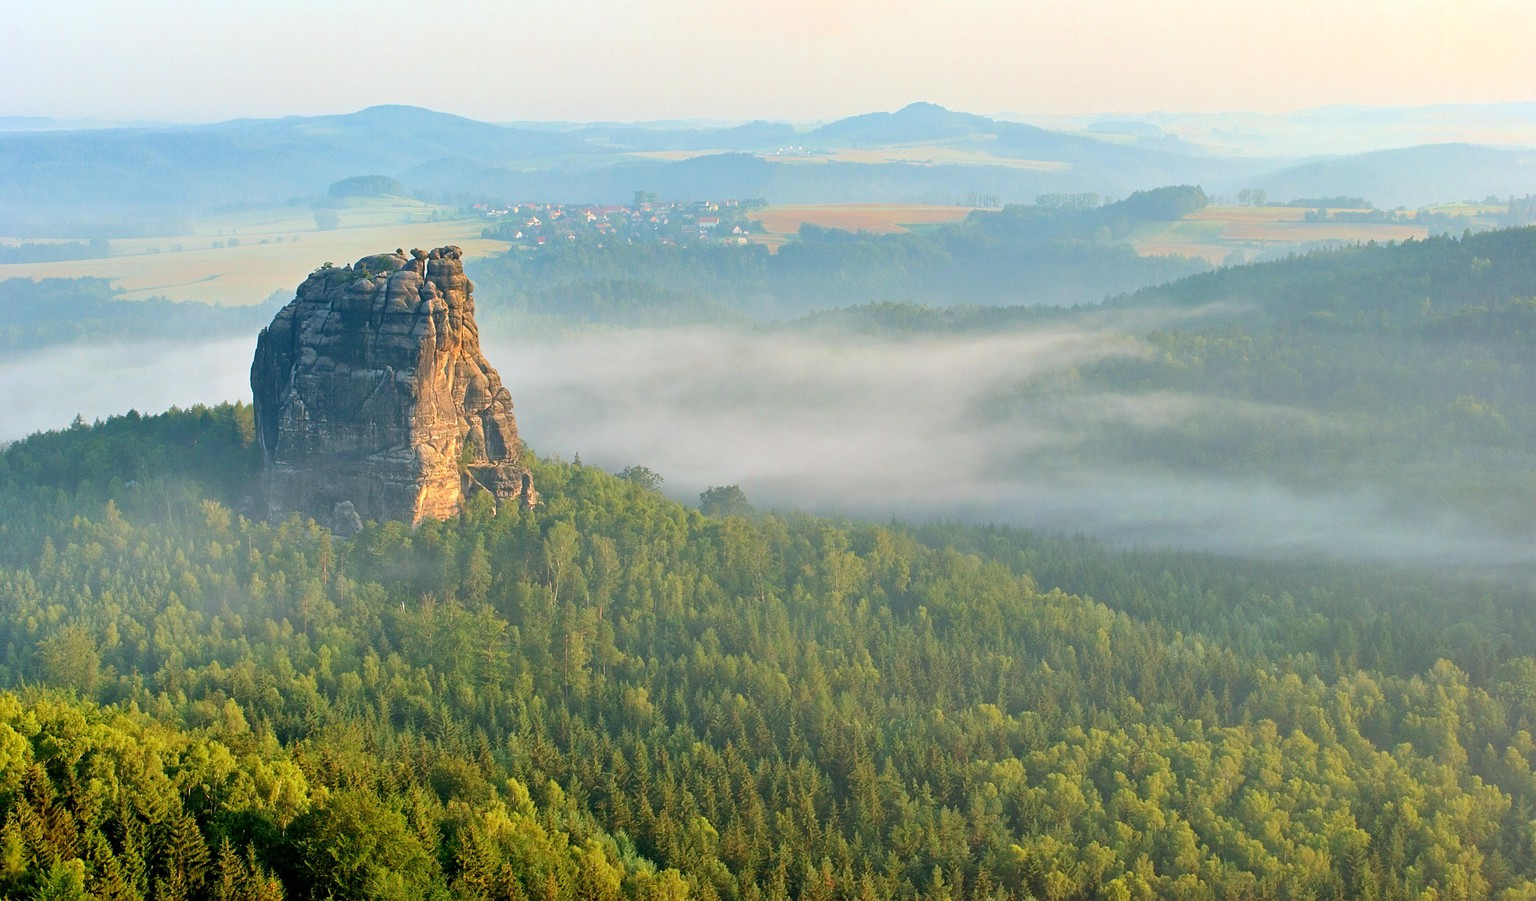 falkenstein rock, saxon switzerland, morning mist, elbsandsteingebirge